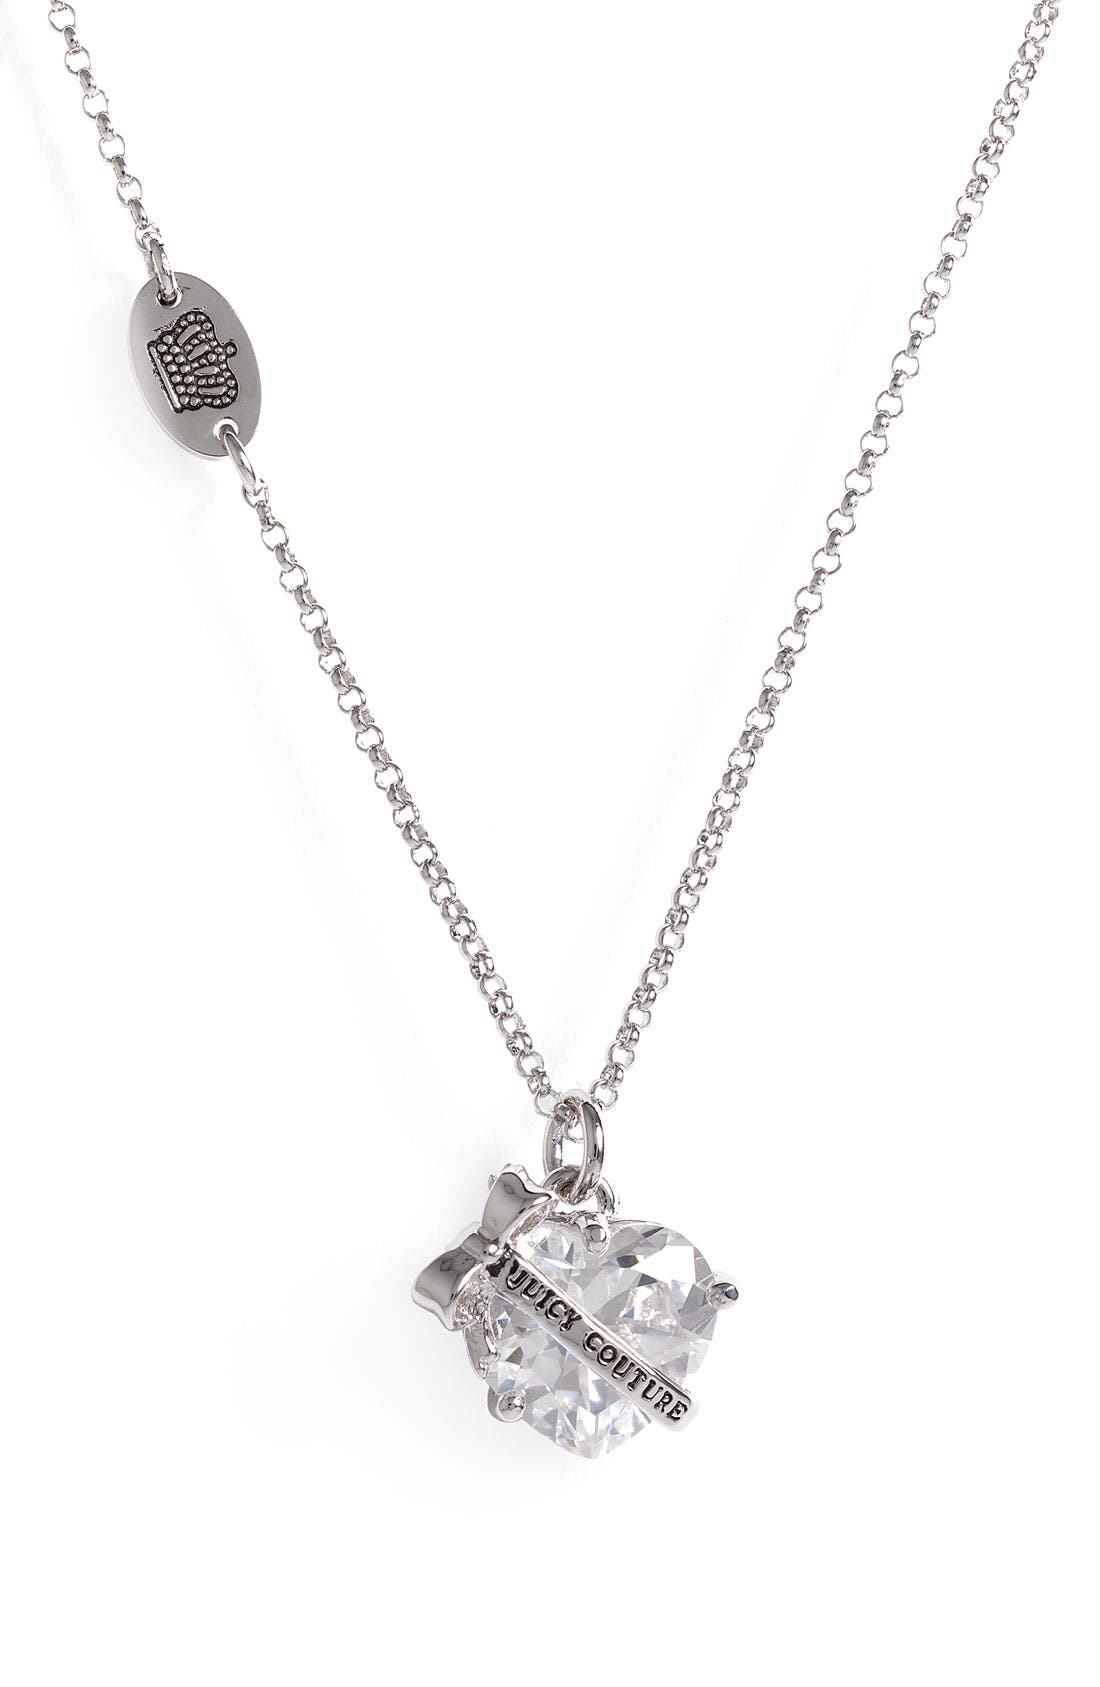 Alternate Image 1 Selected - Juicy Couture 'Wishes' Faceted Heart Pendant Necklace